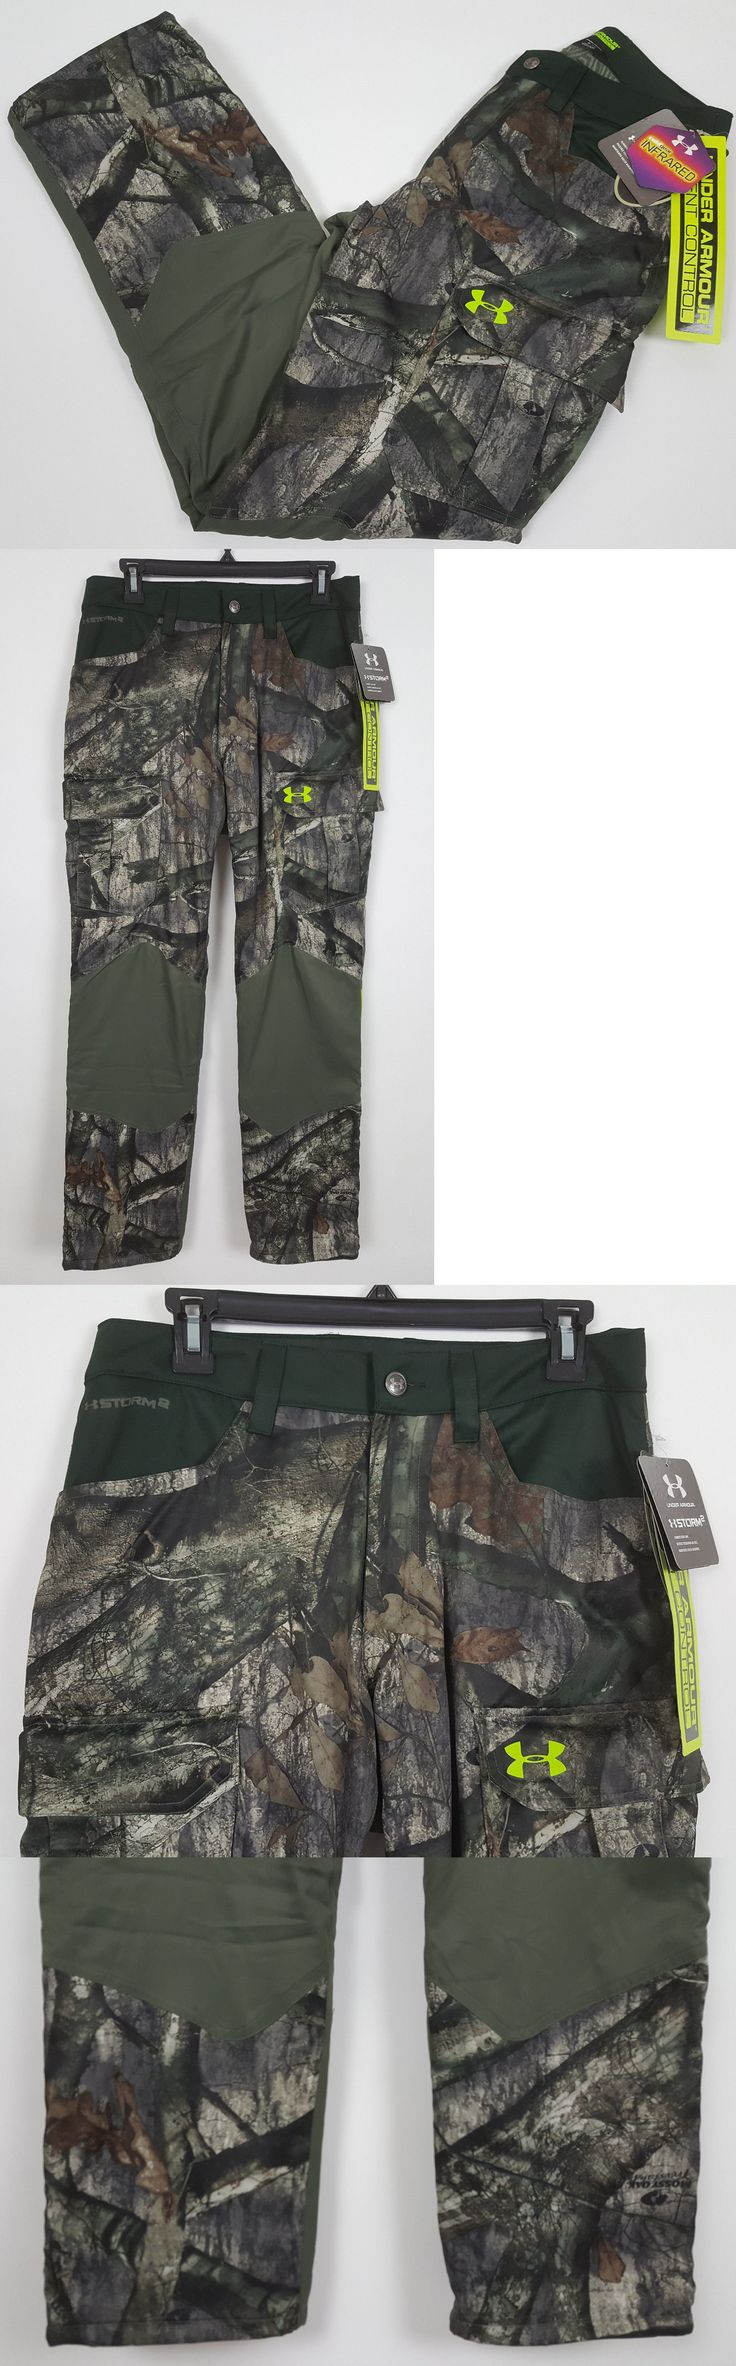 Pants and Bibs 177873: Under Armour Coldgear Barrier Hunting Pants Mossy Oak Camo $150 1262327 (Small) -> BUY IT NOW ONLY: $64.89 on eBay!